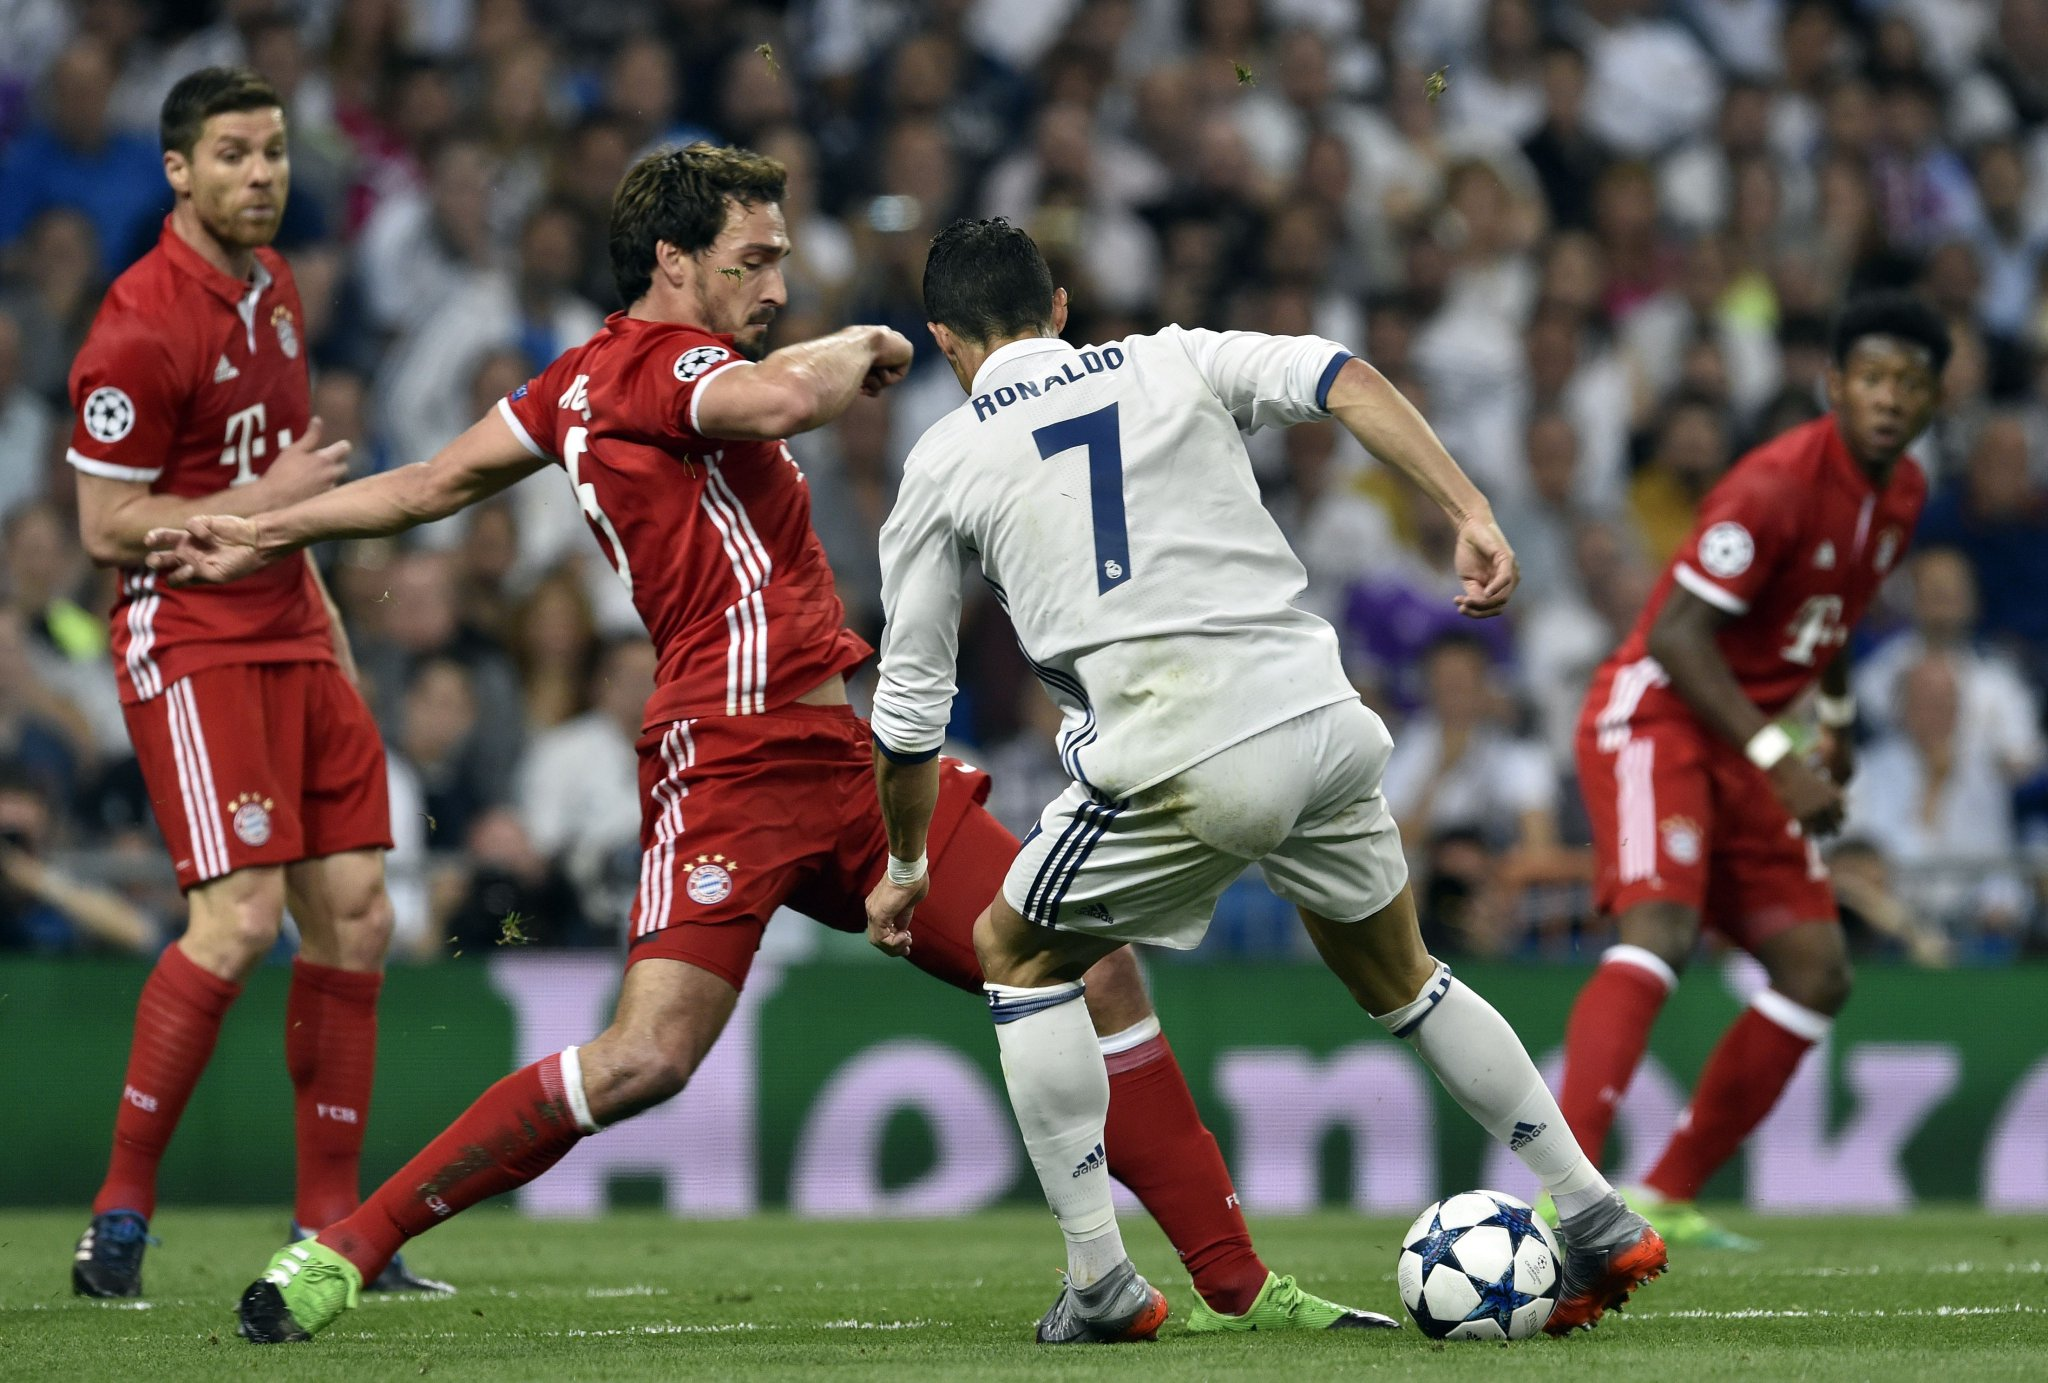 Real To face Atletico, As Juve Draw Monaco In UCL Semis